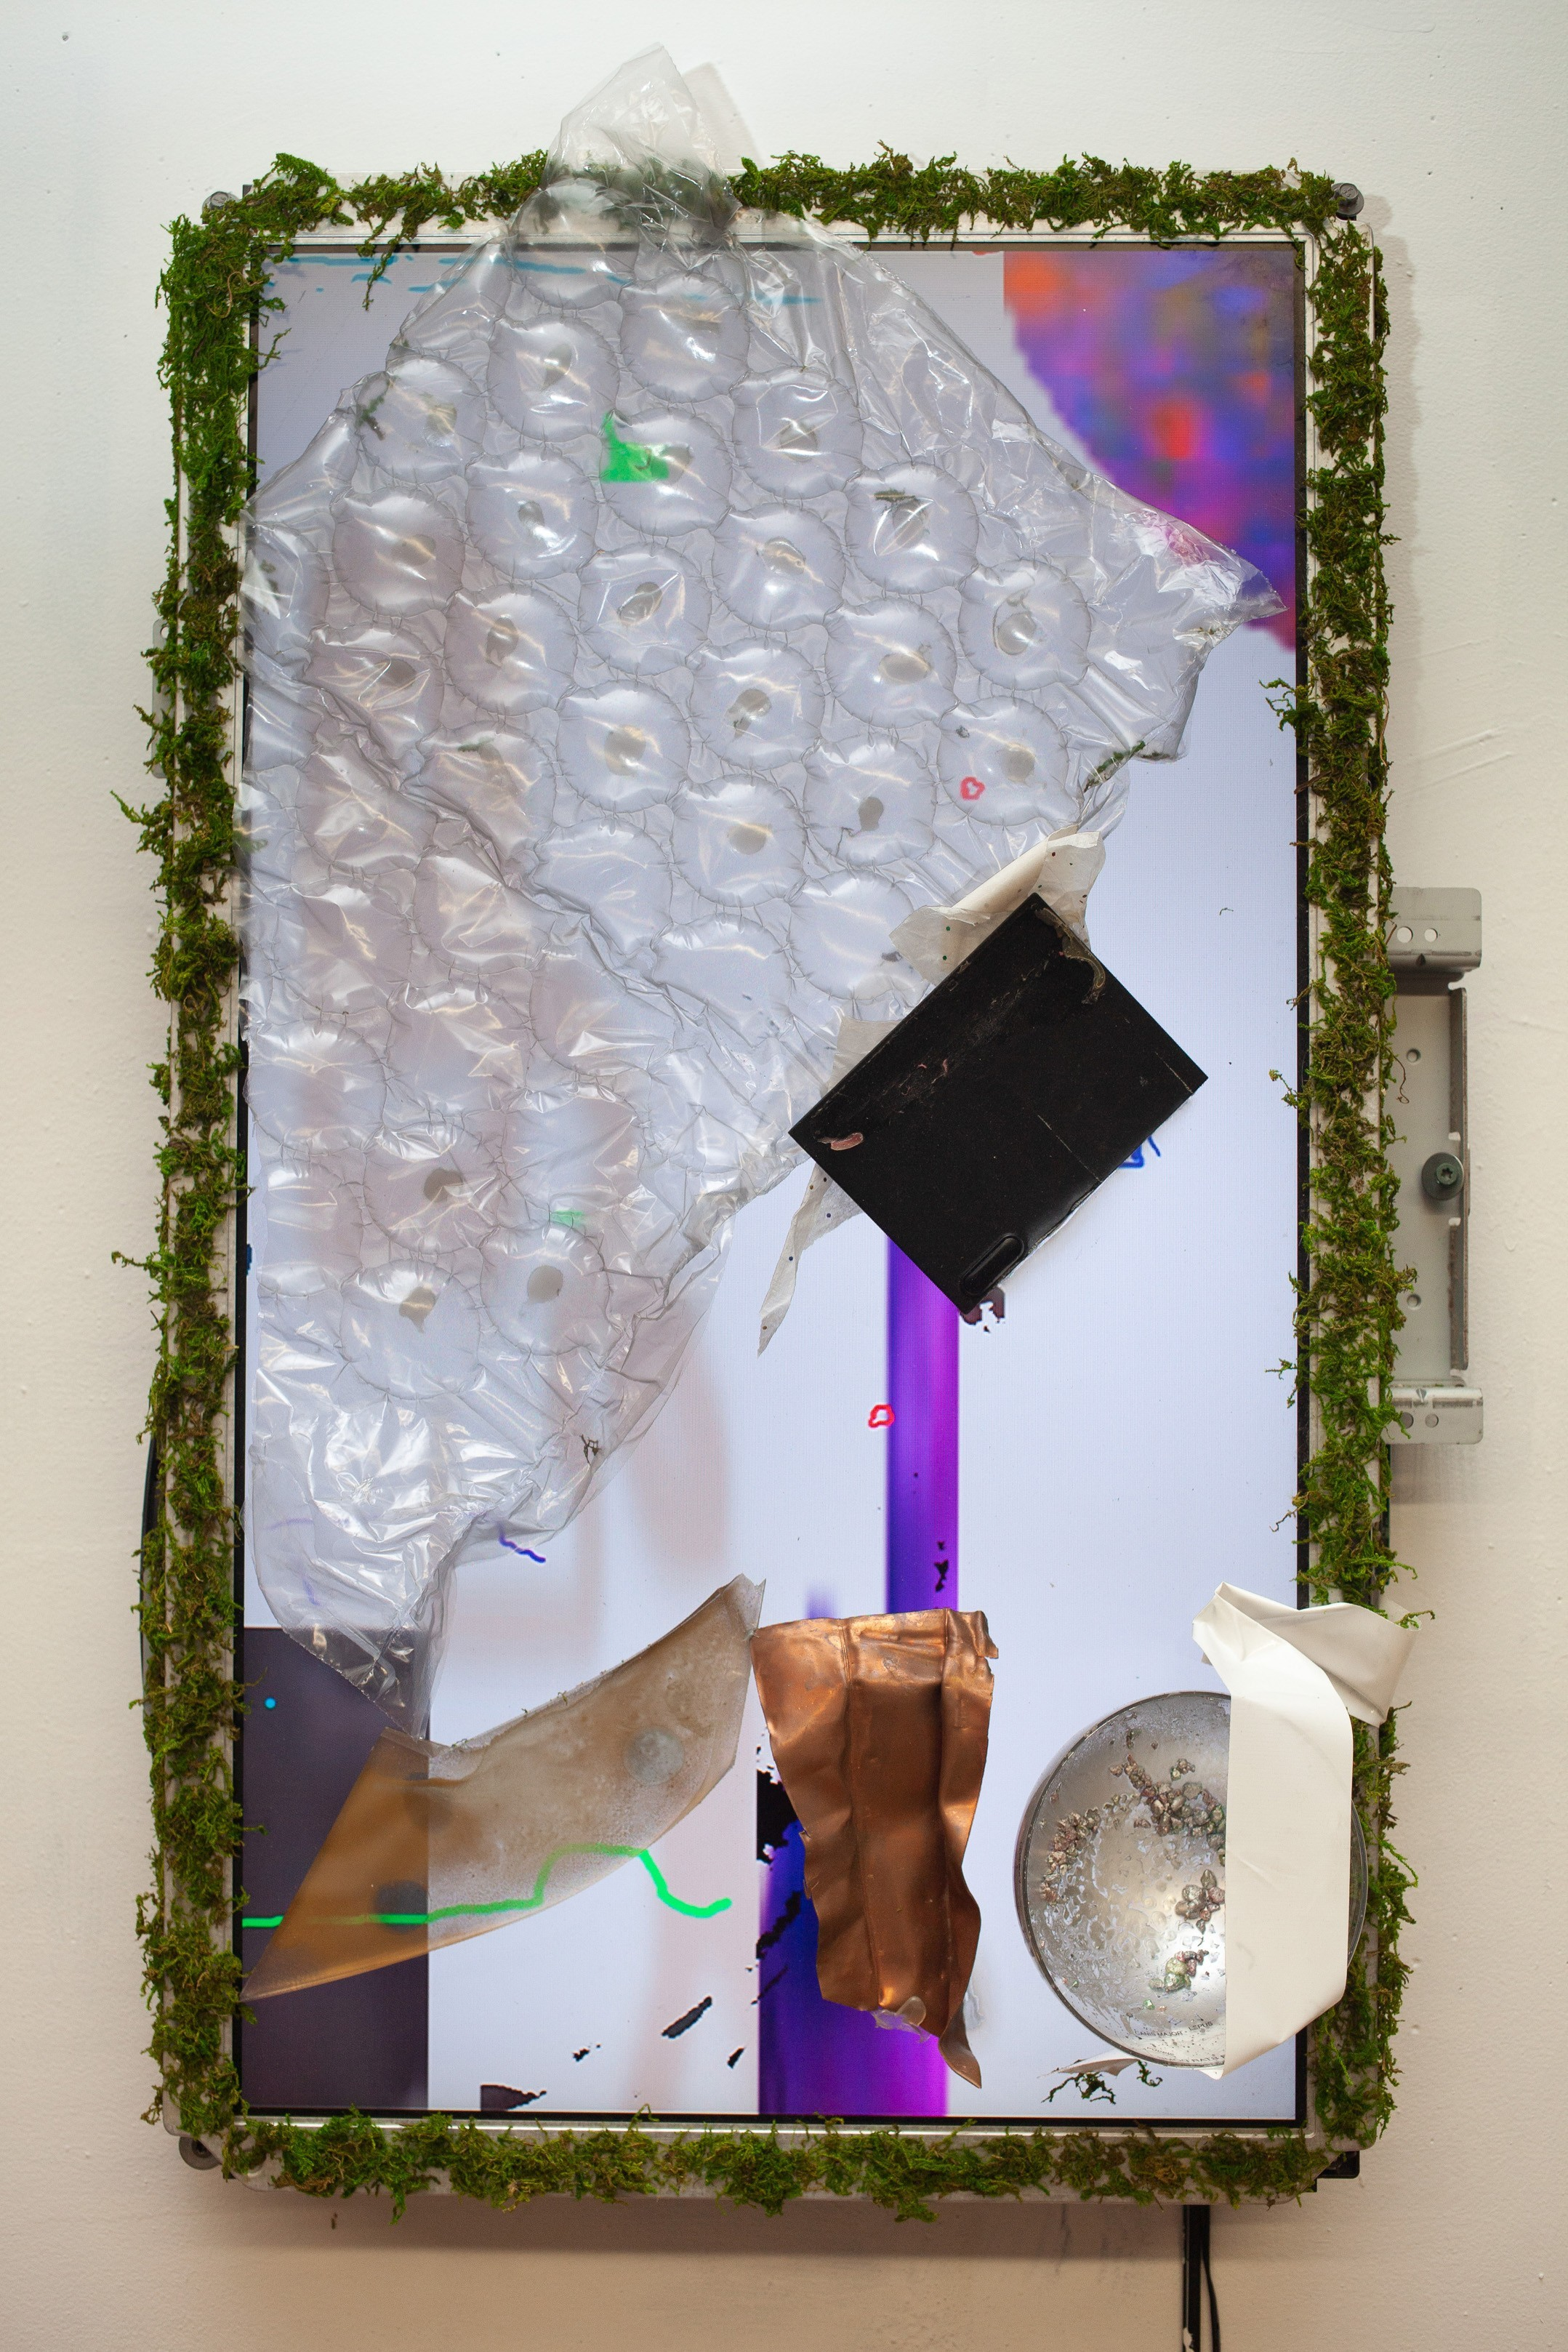 Videopainting 3 , 2019, LCD monitor with found objects, 18 x 30 IN.